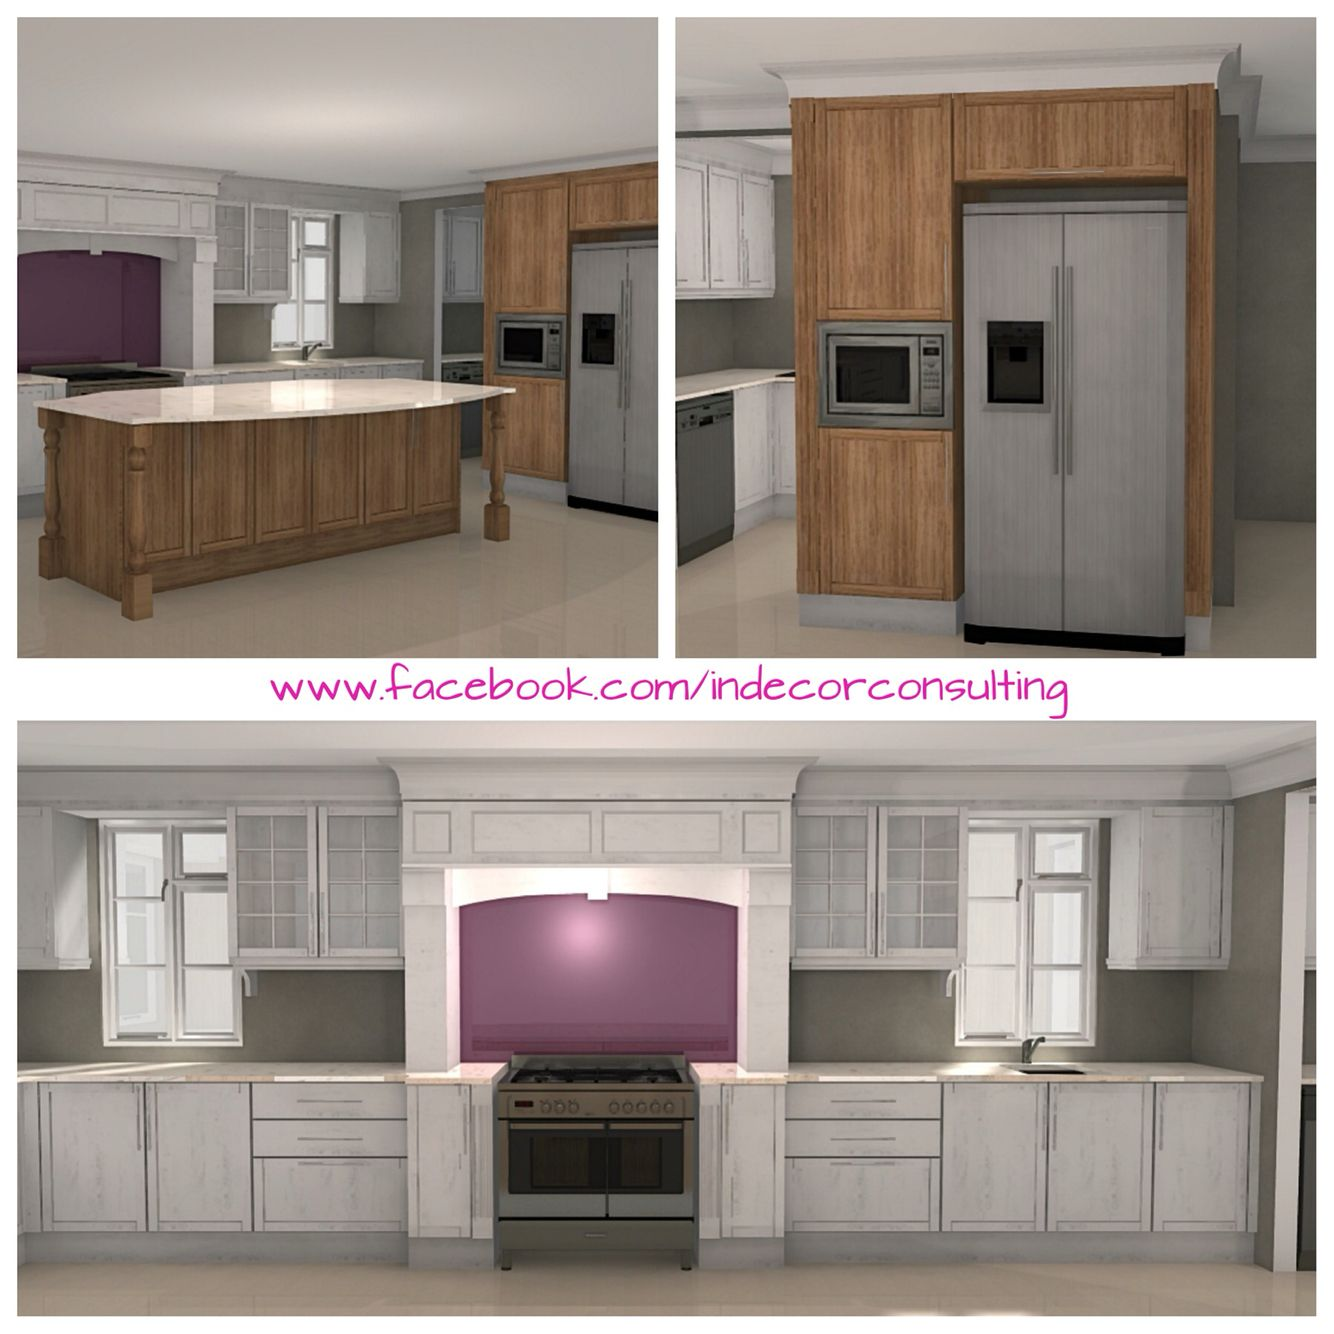 Conceptual Kitchen Design For A New Build In Franschoek